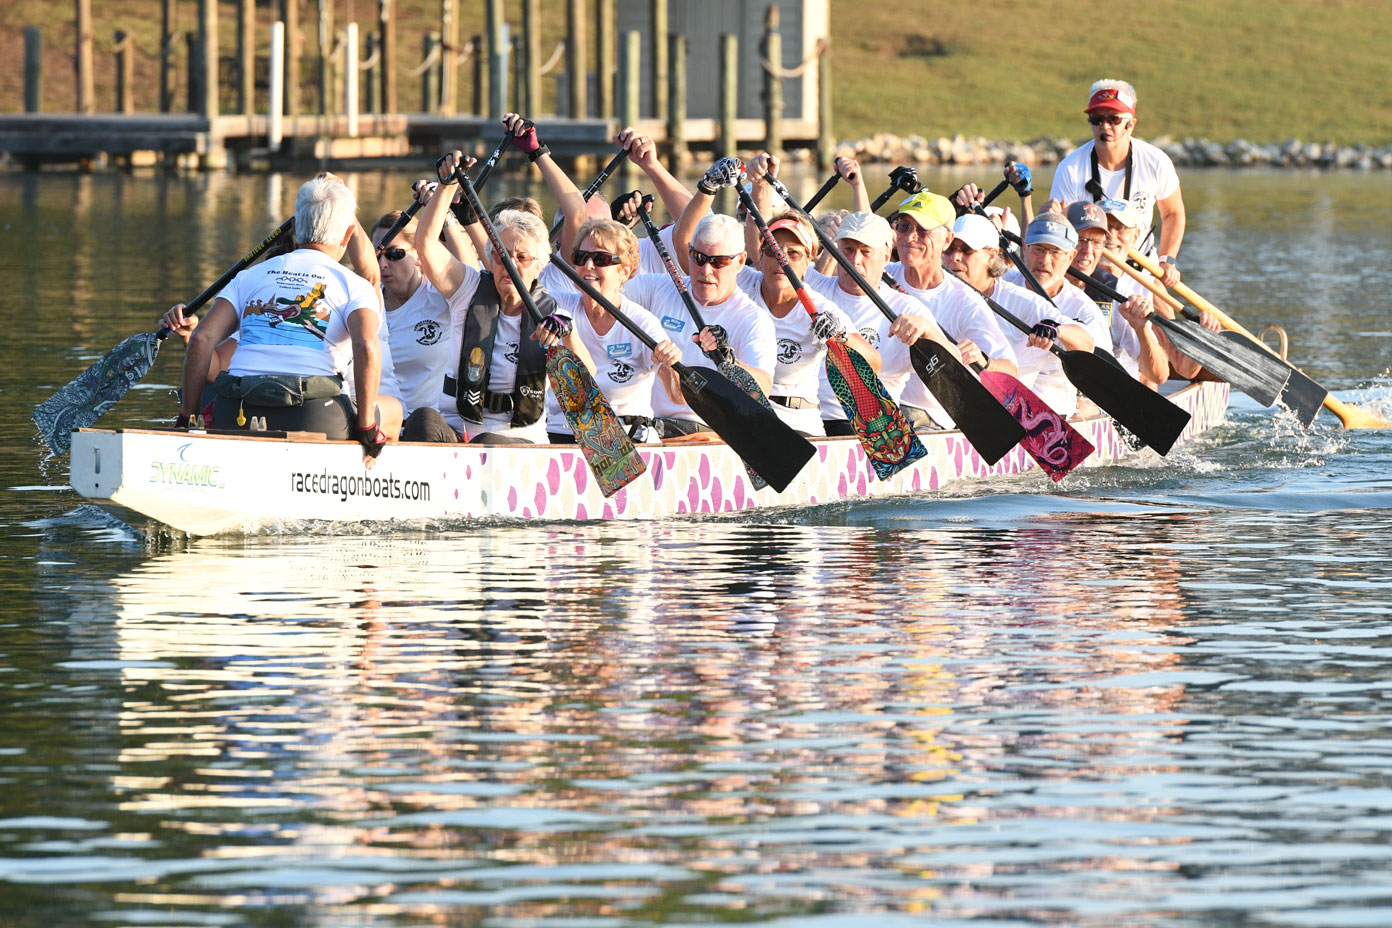 Villagers participating in the dragon boat race on Tellico Lake